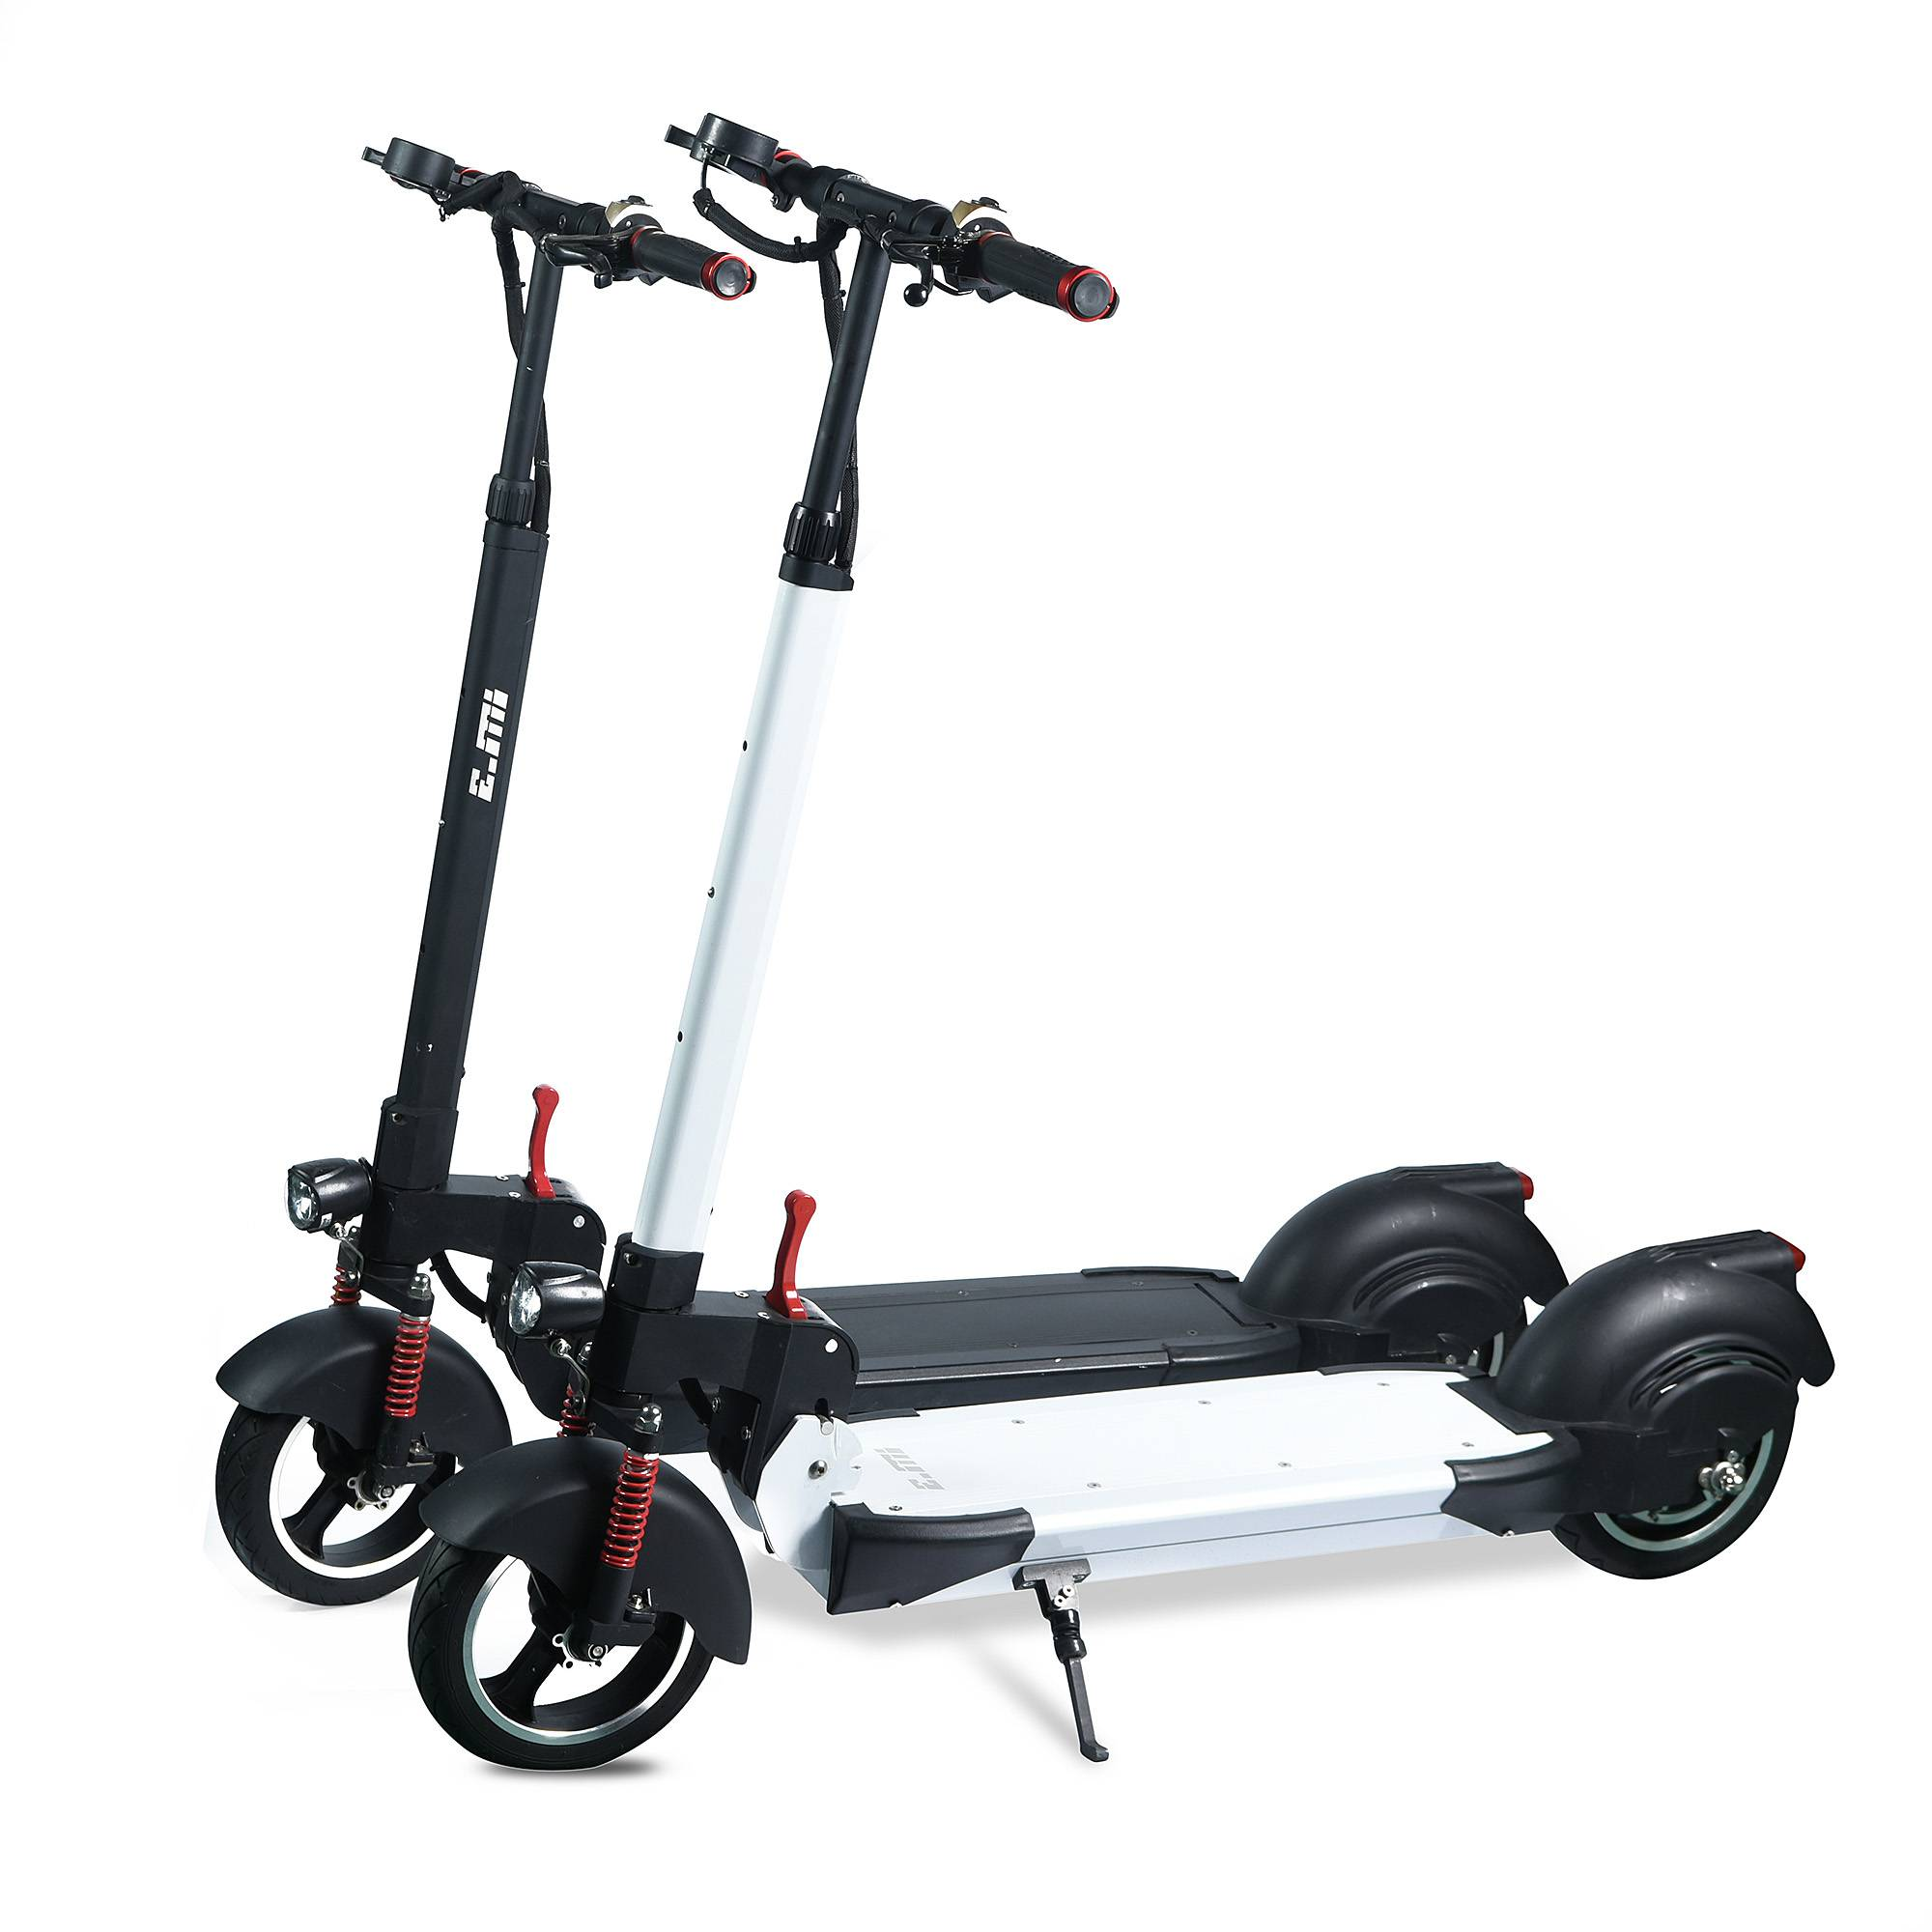 Adult Electric Scooter GCM-1001 Featured Image